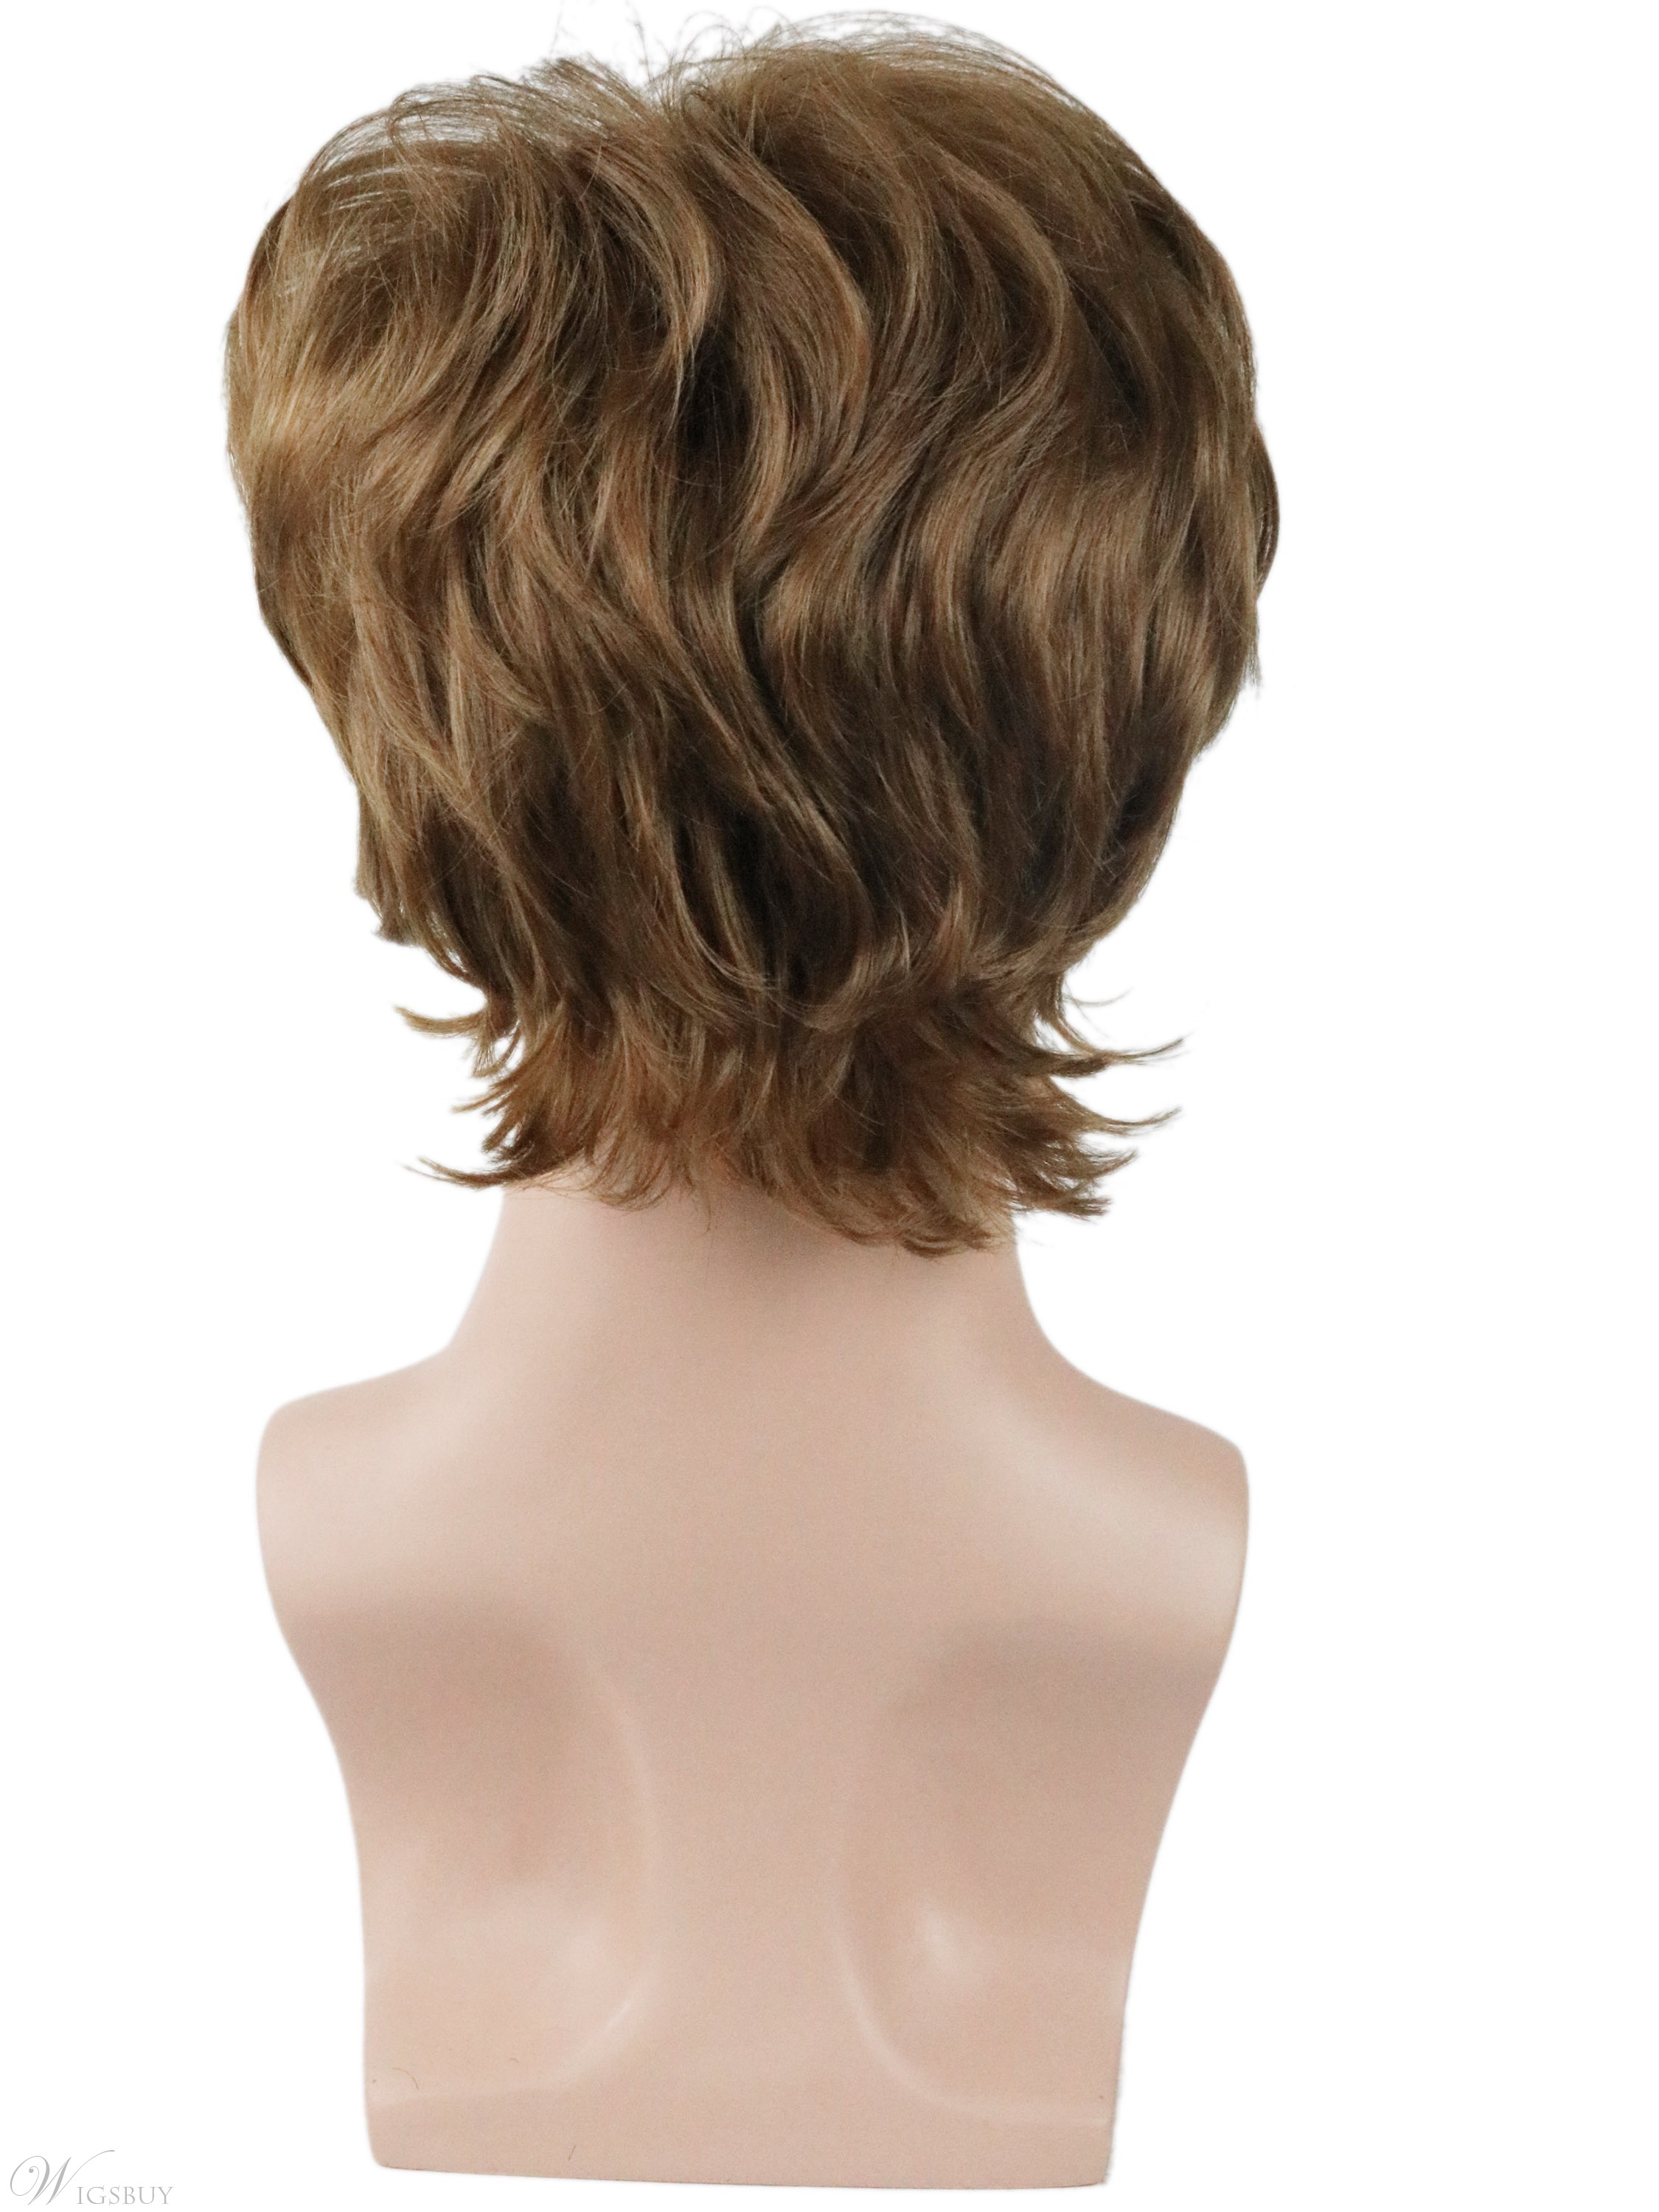 Men's Short Synthetic Wigs Natural Straight Hair Full Capless Wig 10inch